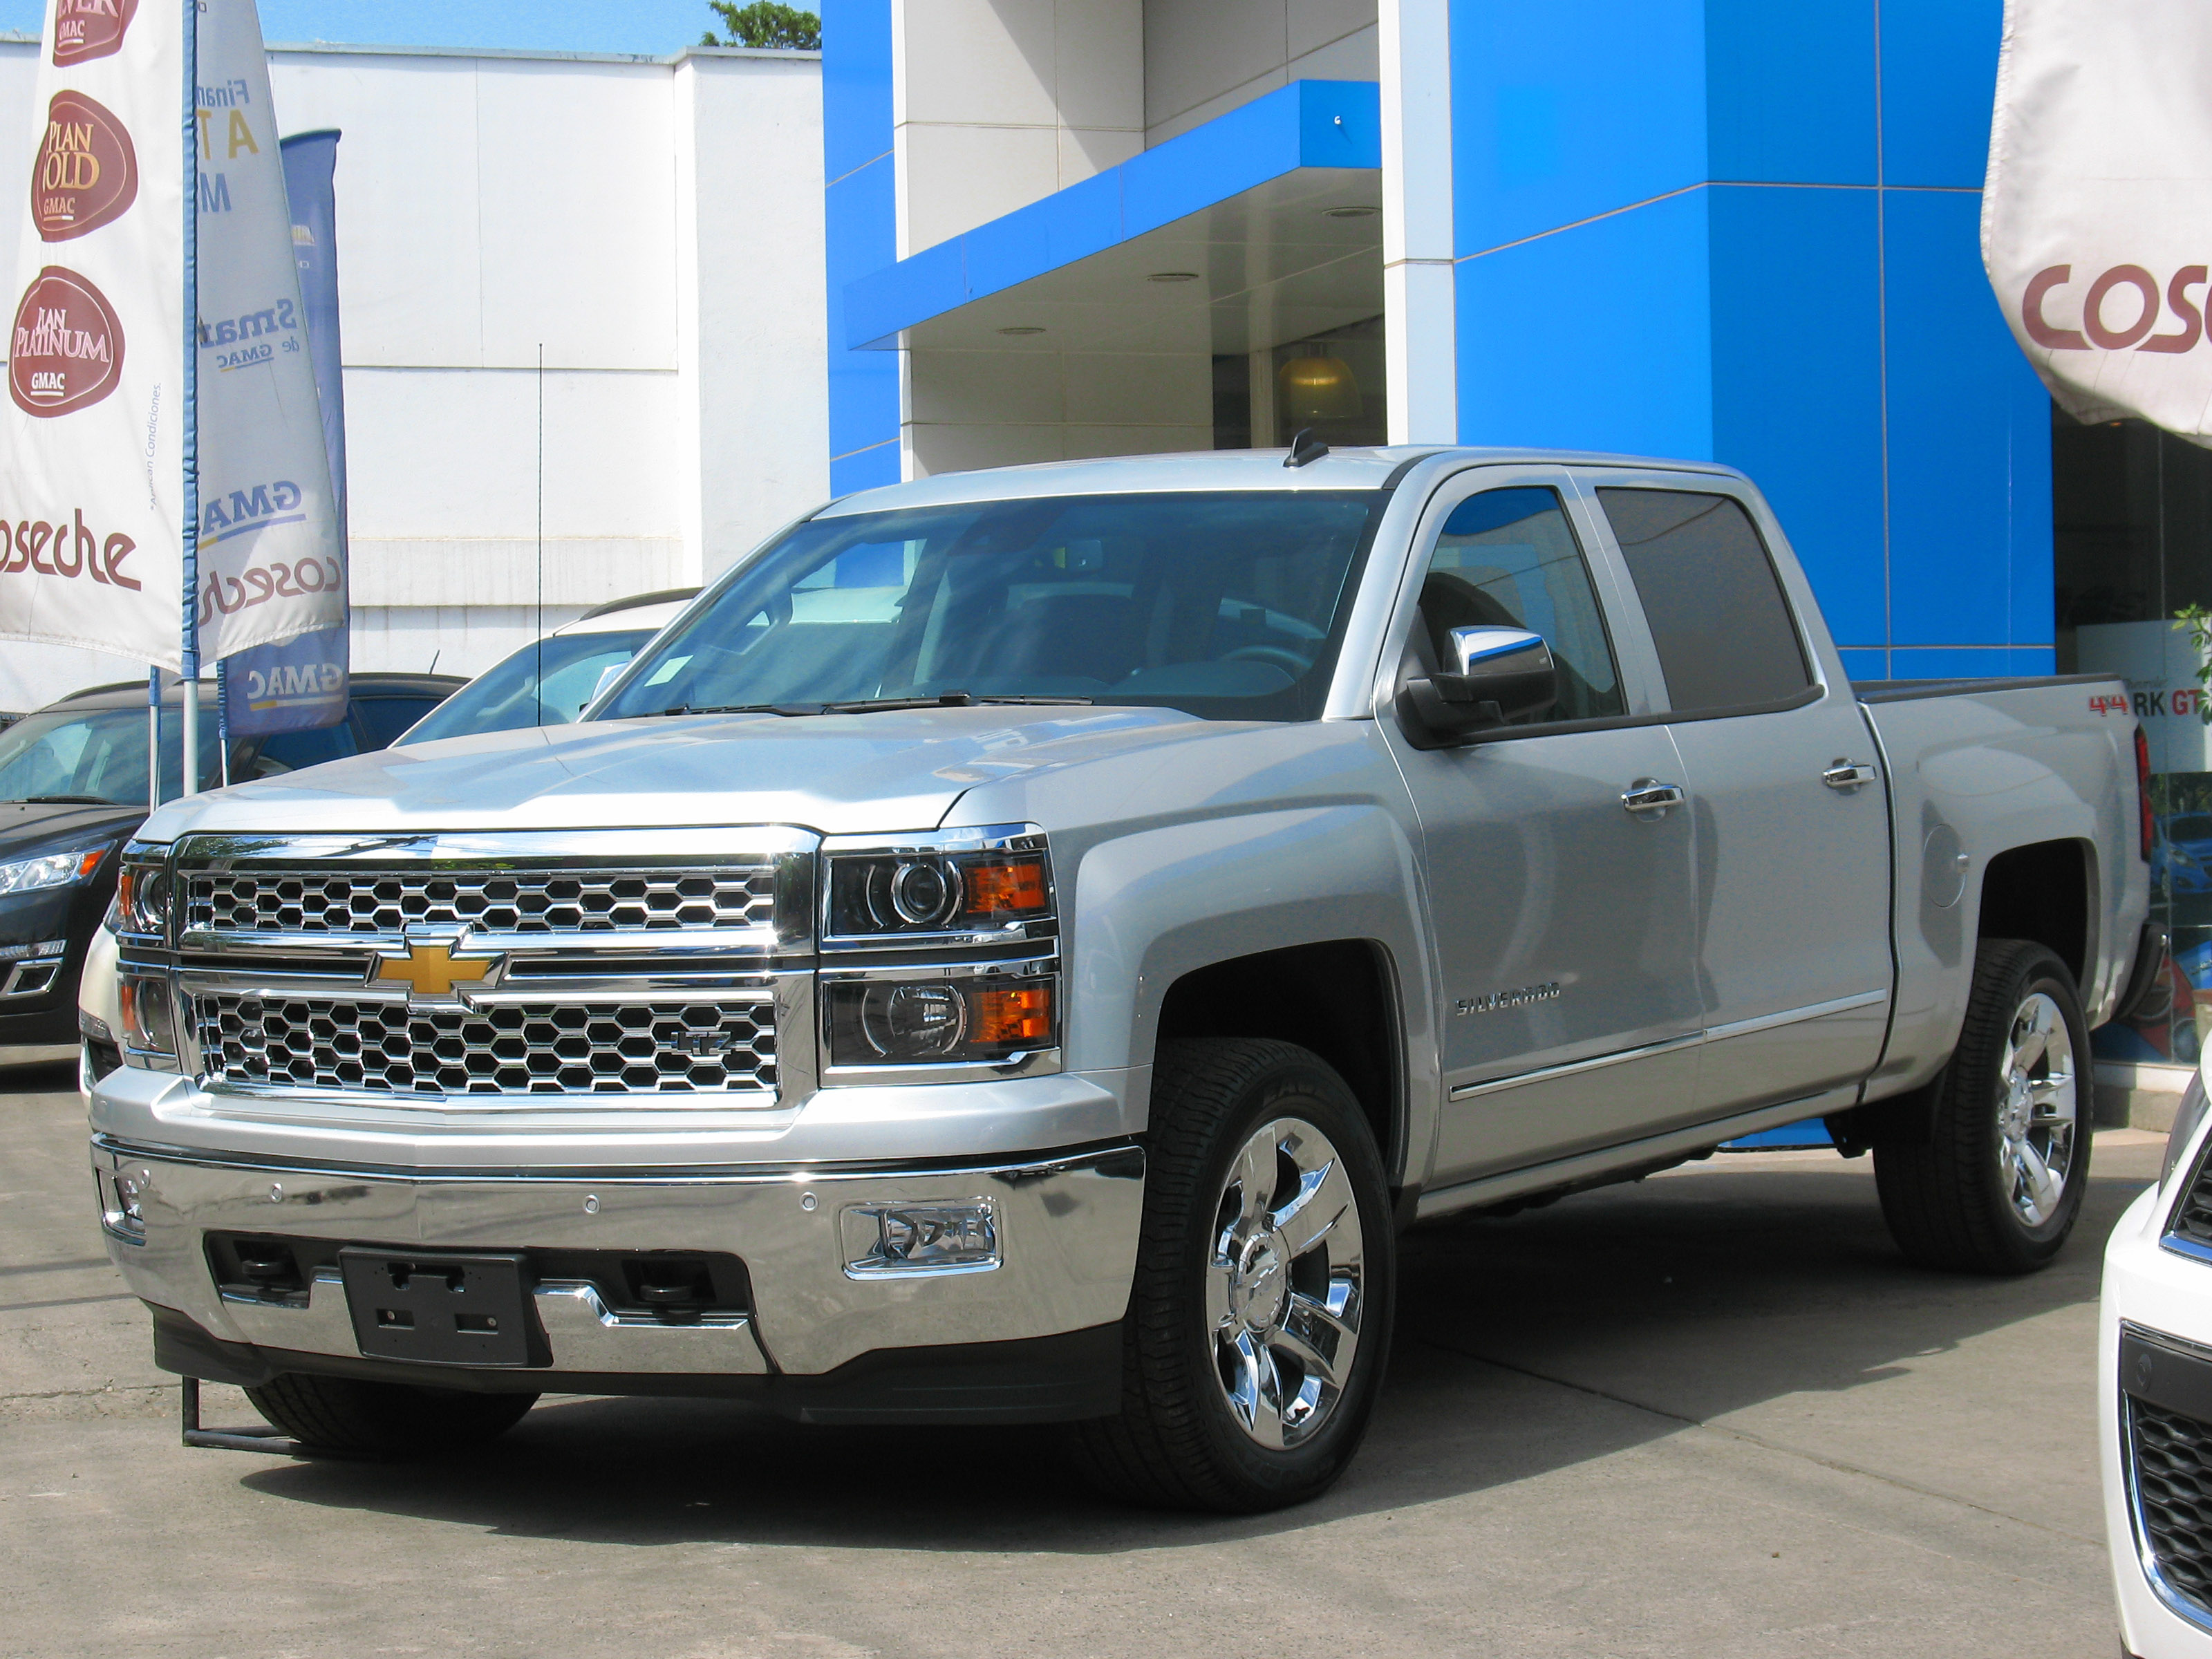 chevy worst camaro avalanche s money epa mpg a makes famous chevrolet gas guzzler story hit cars list